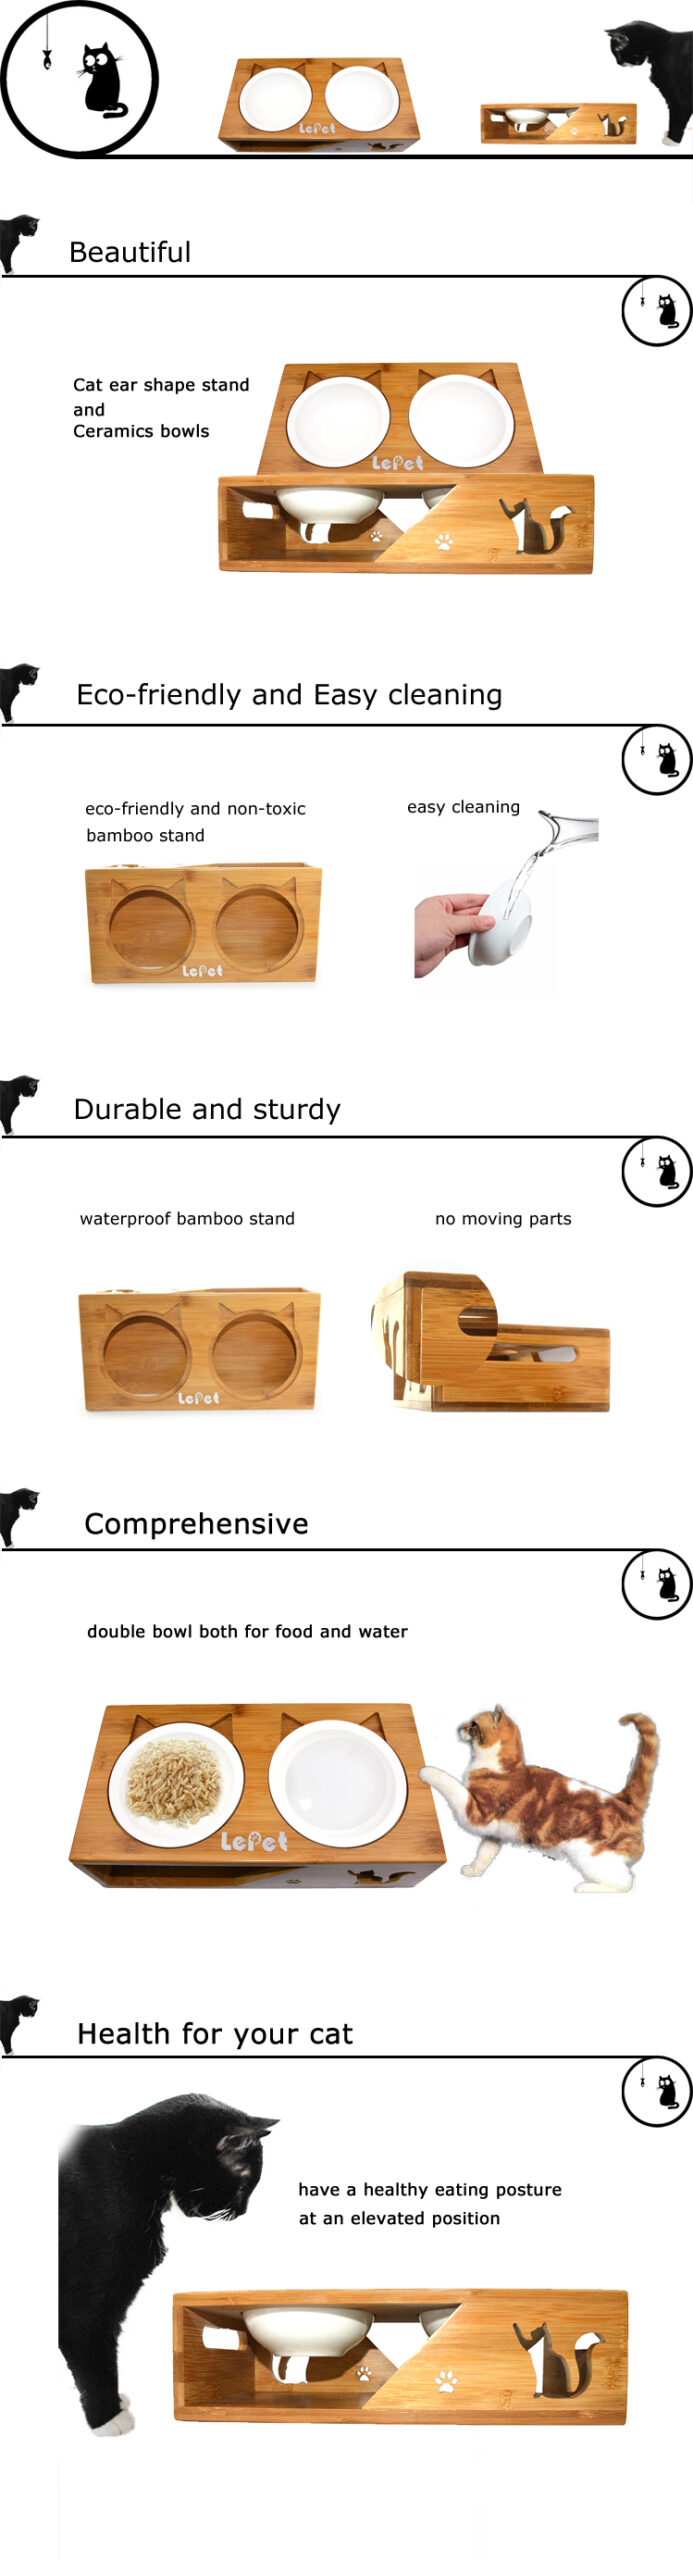 pet feeders cat bowl wholesale supplier to Amazon and eBay stores